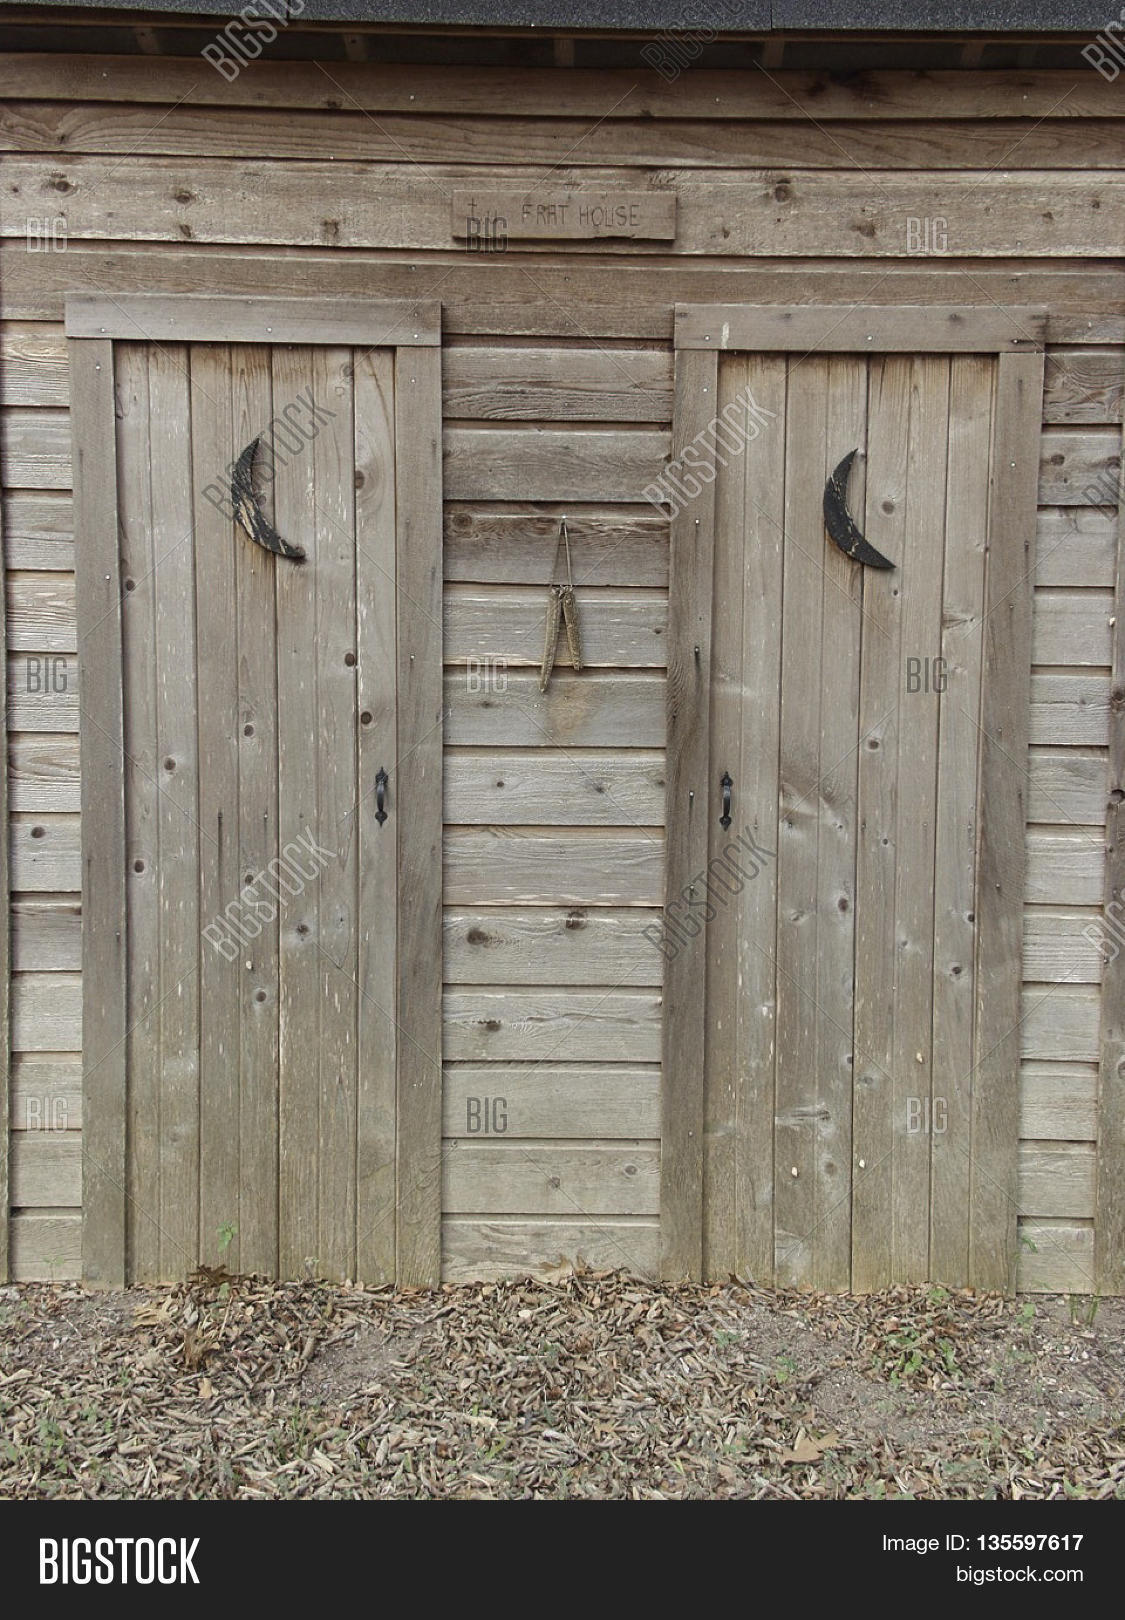 Two old outhouse doors side-by-side in a small town. & Two old outhouse doors side-by-side in a small town. Stock Photo ... Pezcame.Com